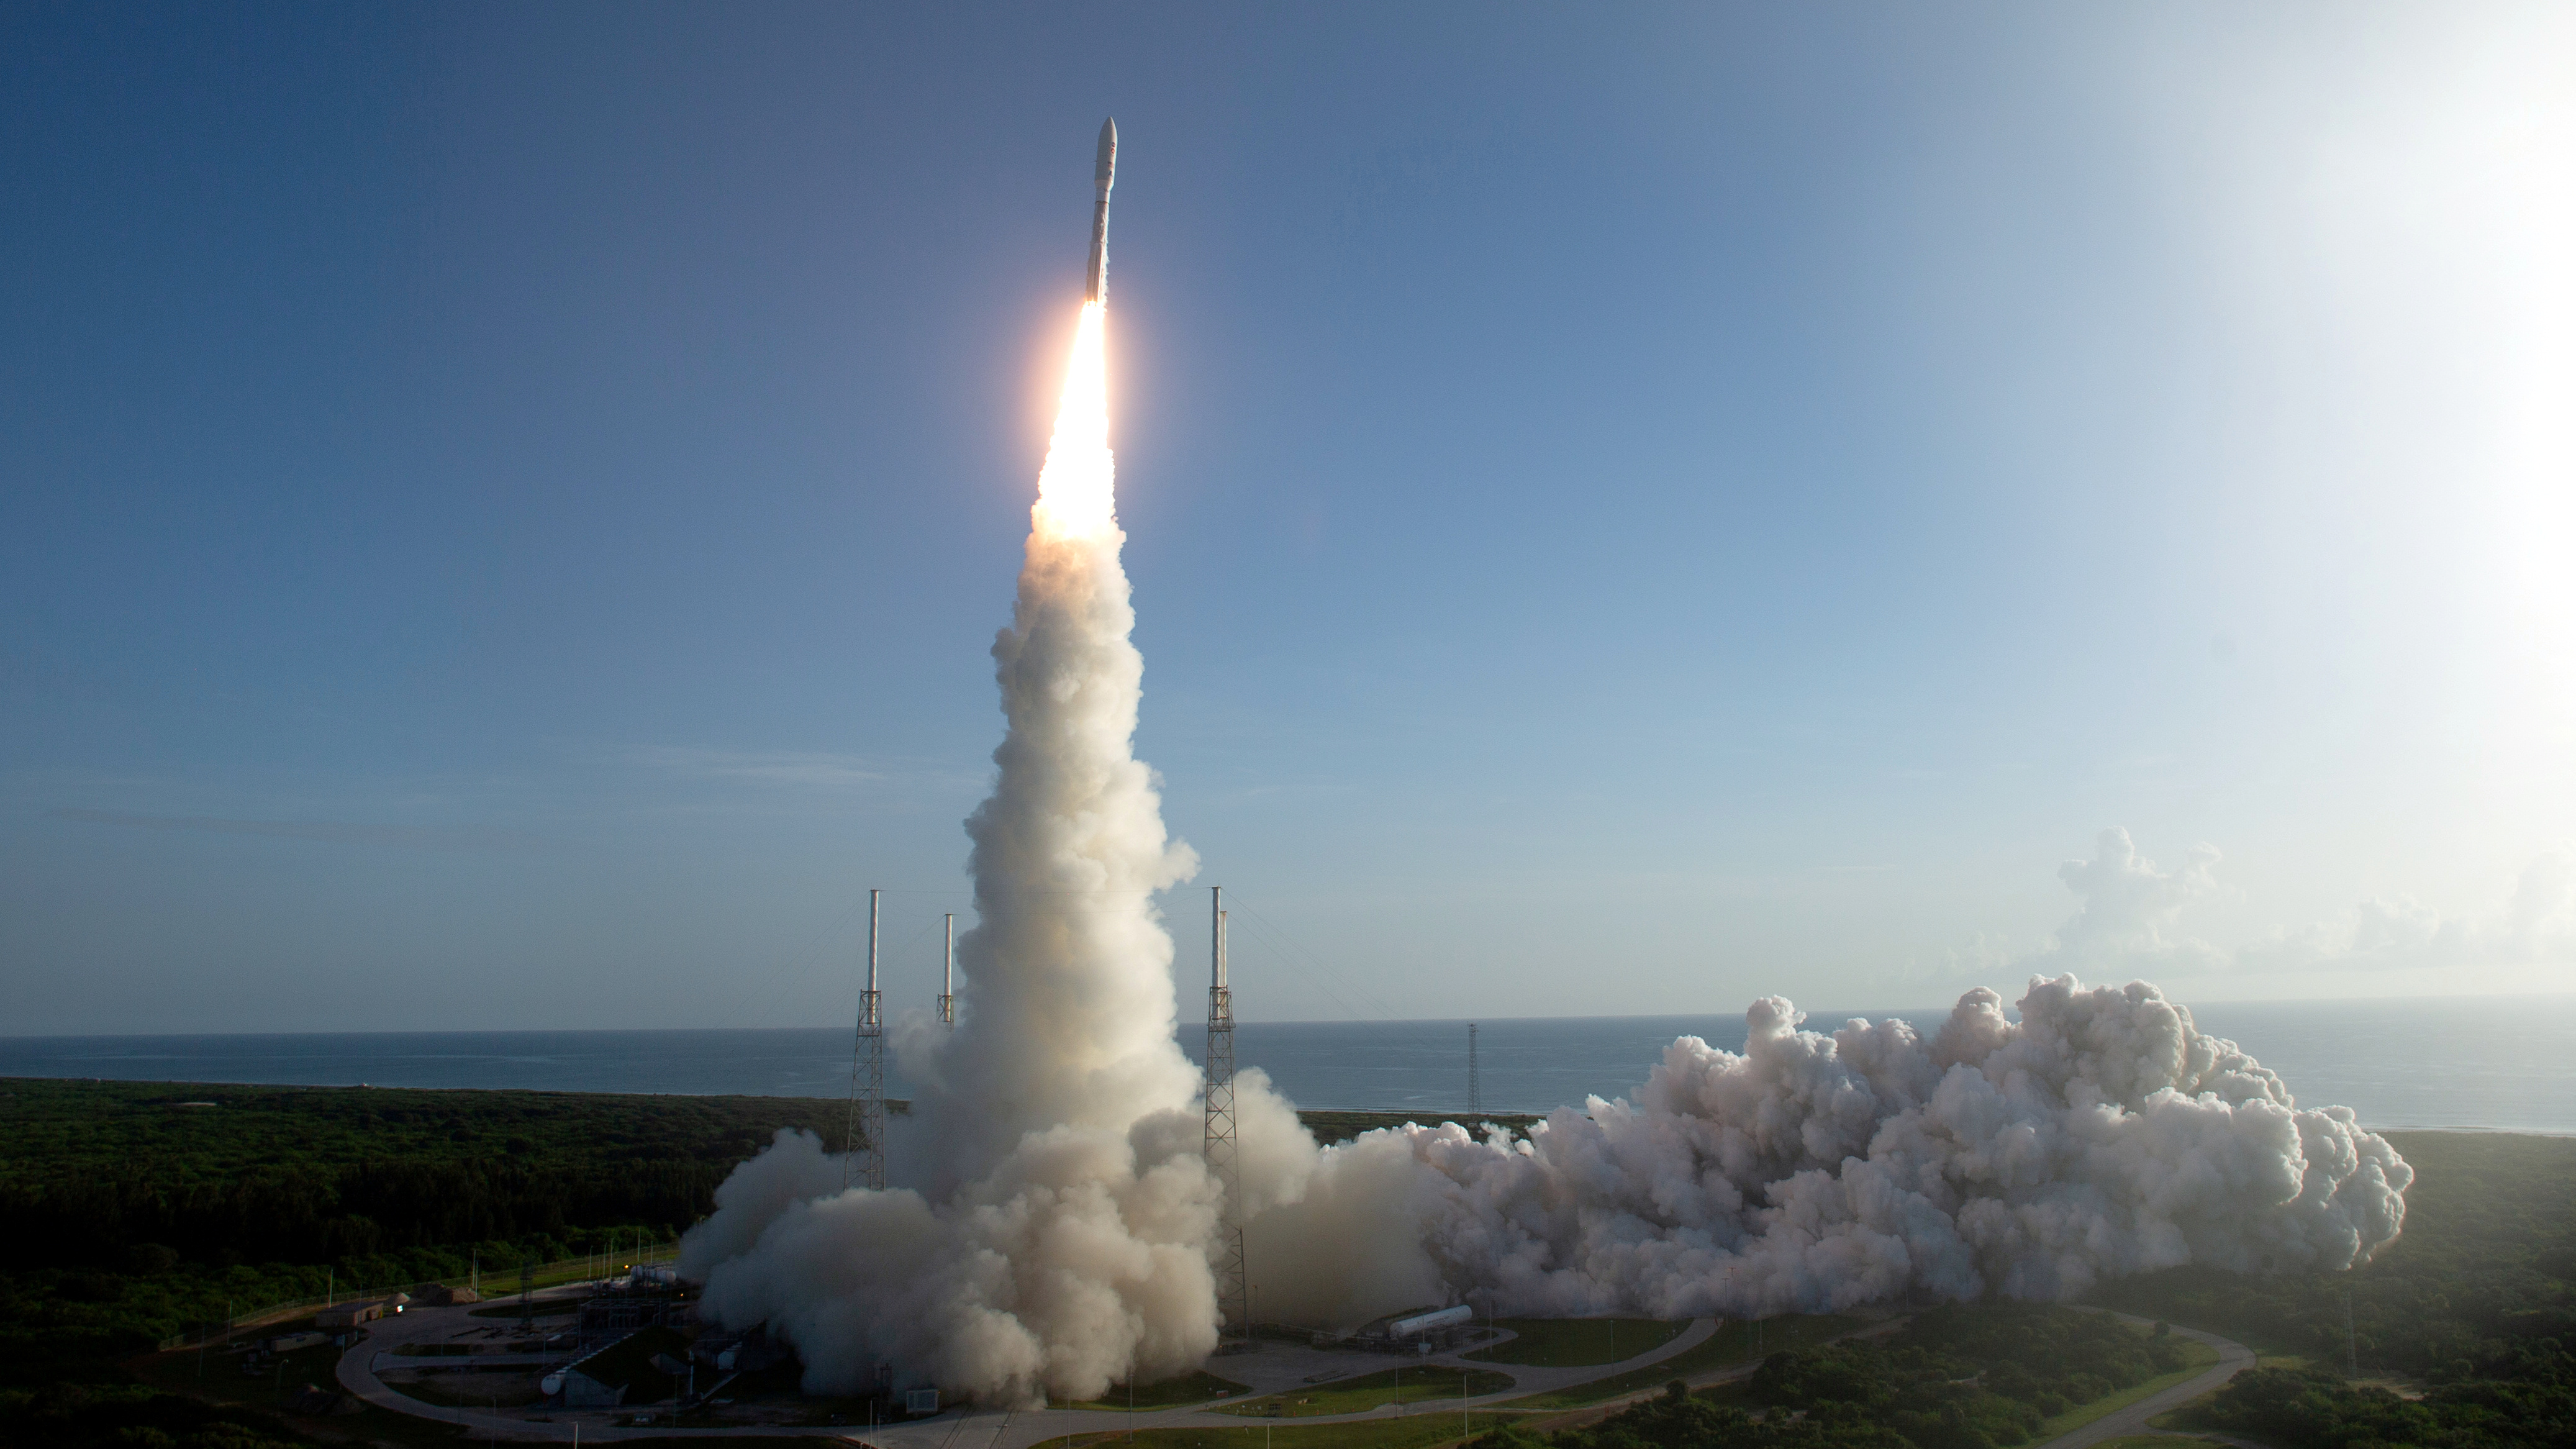 A rocket launches NASA's Mars 2020 mission from Cape Canaveral.